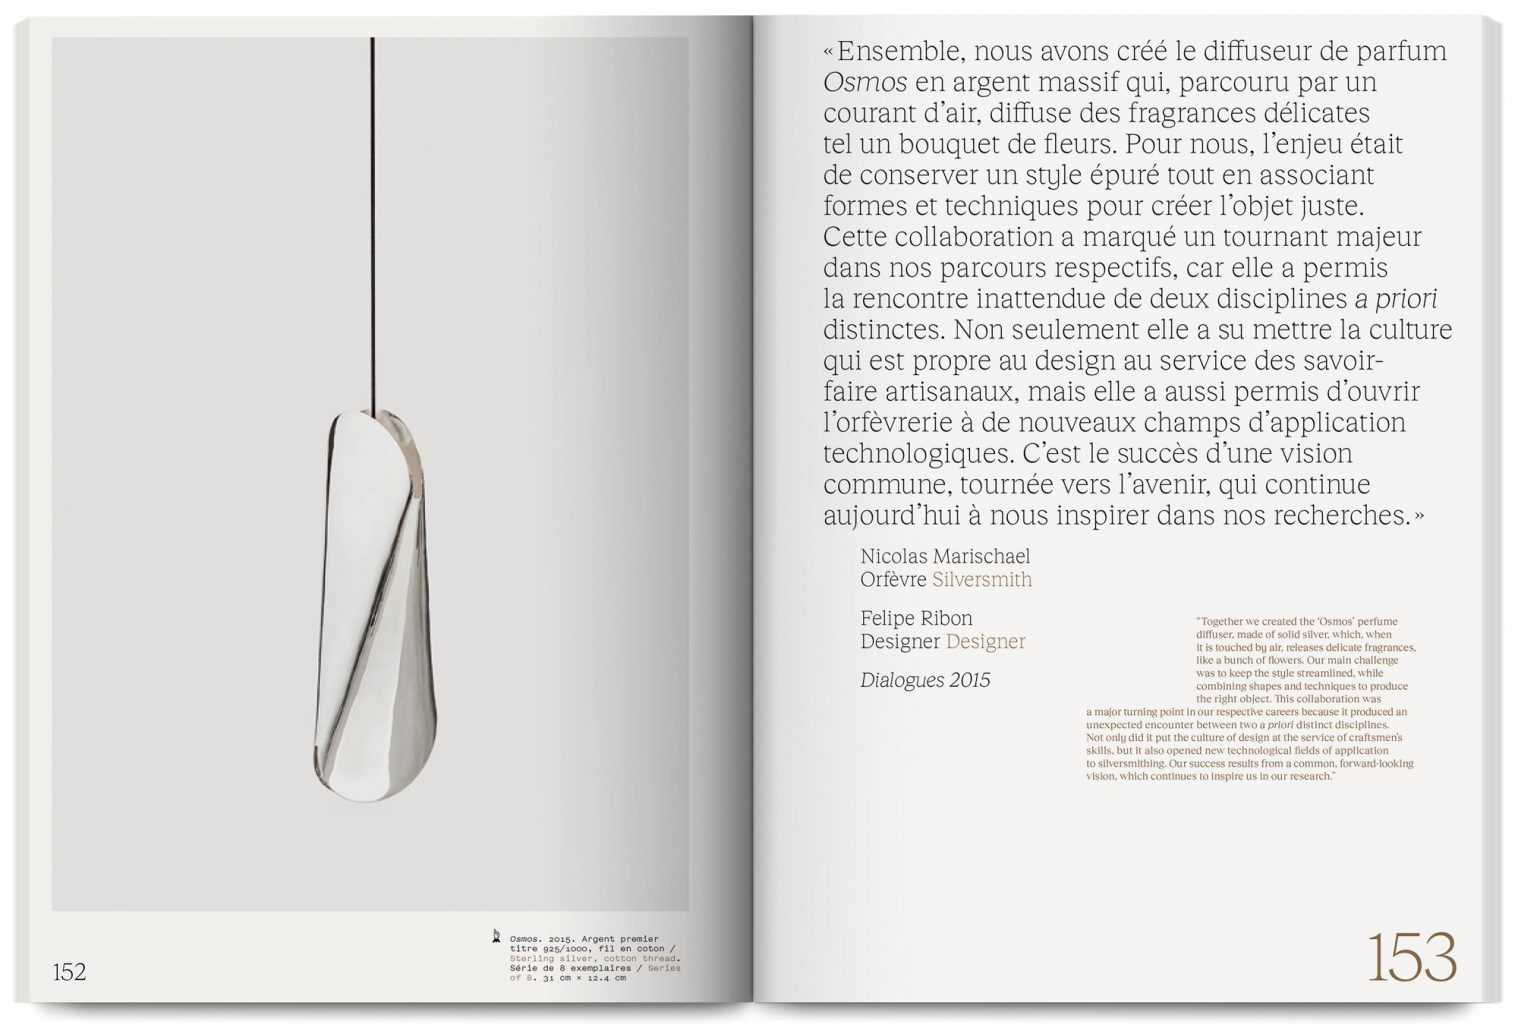 Exhibition catalogue L'esprit commence et finit avec les mains at the Palais de Tokyo published by Flammarion, designed by In the shade of a tree studio, founded by Sophie Demay and Maël Fournier Comte.